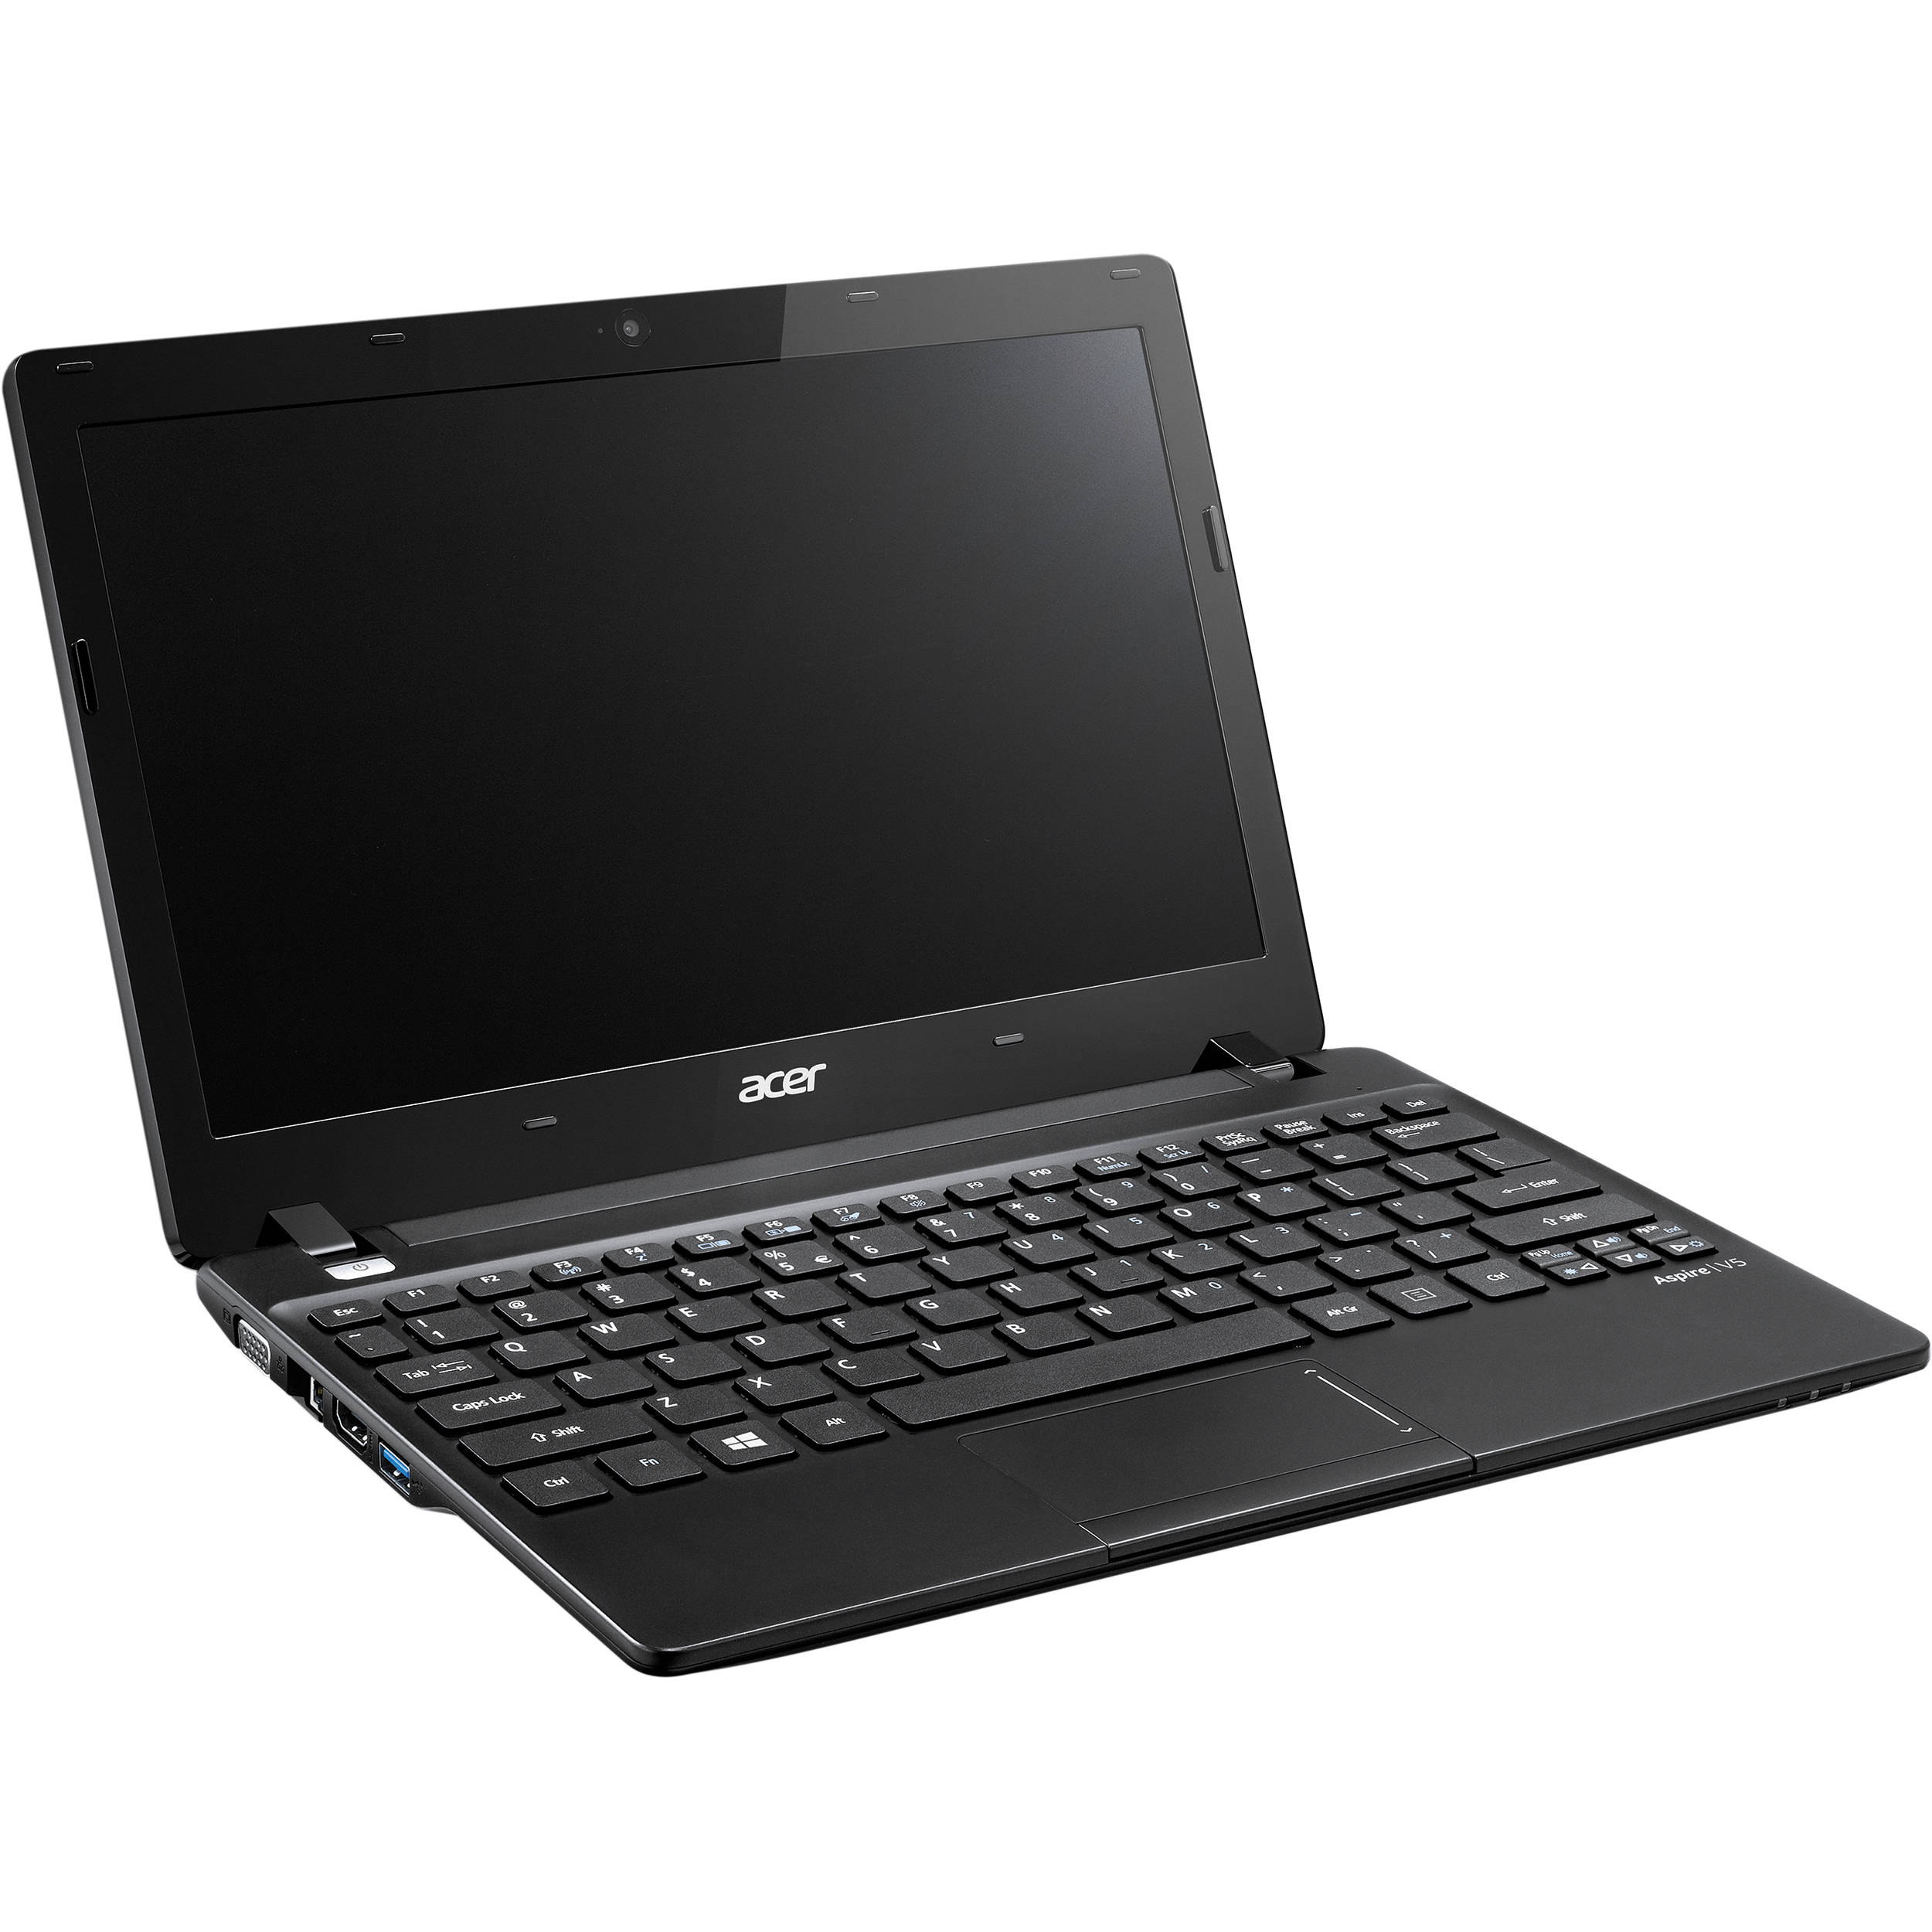 Acer Aspire V5 123 3848 116 Notebook NXMFQAA009 BampH